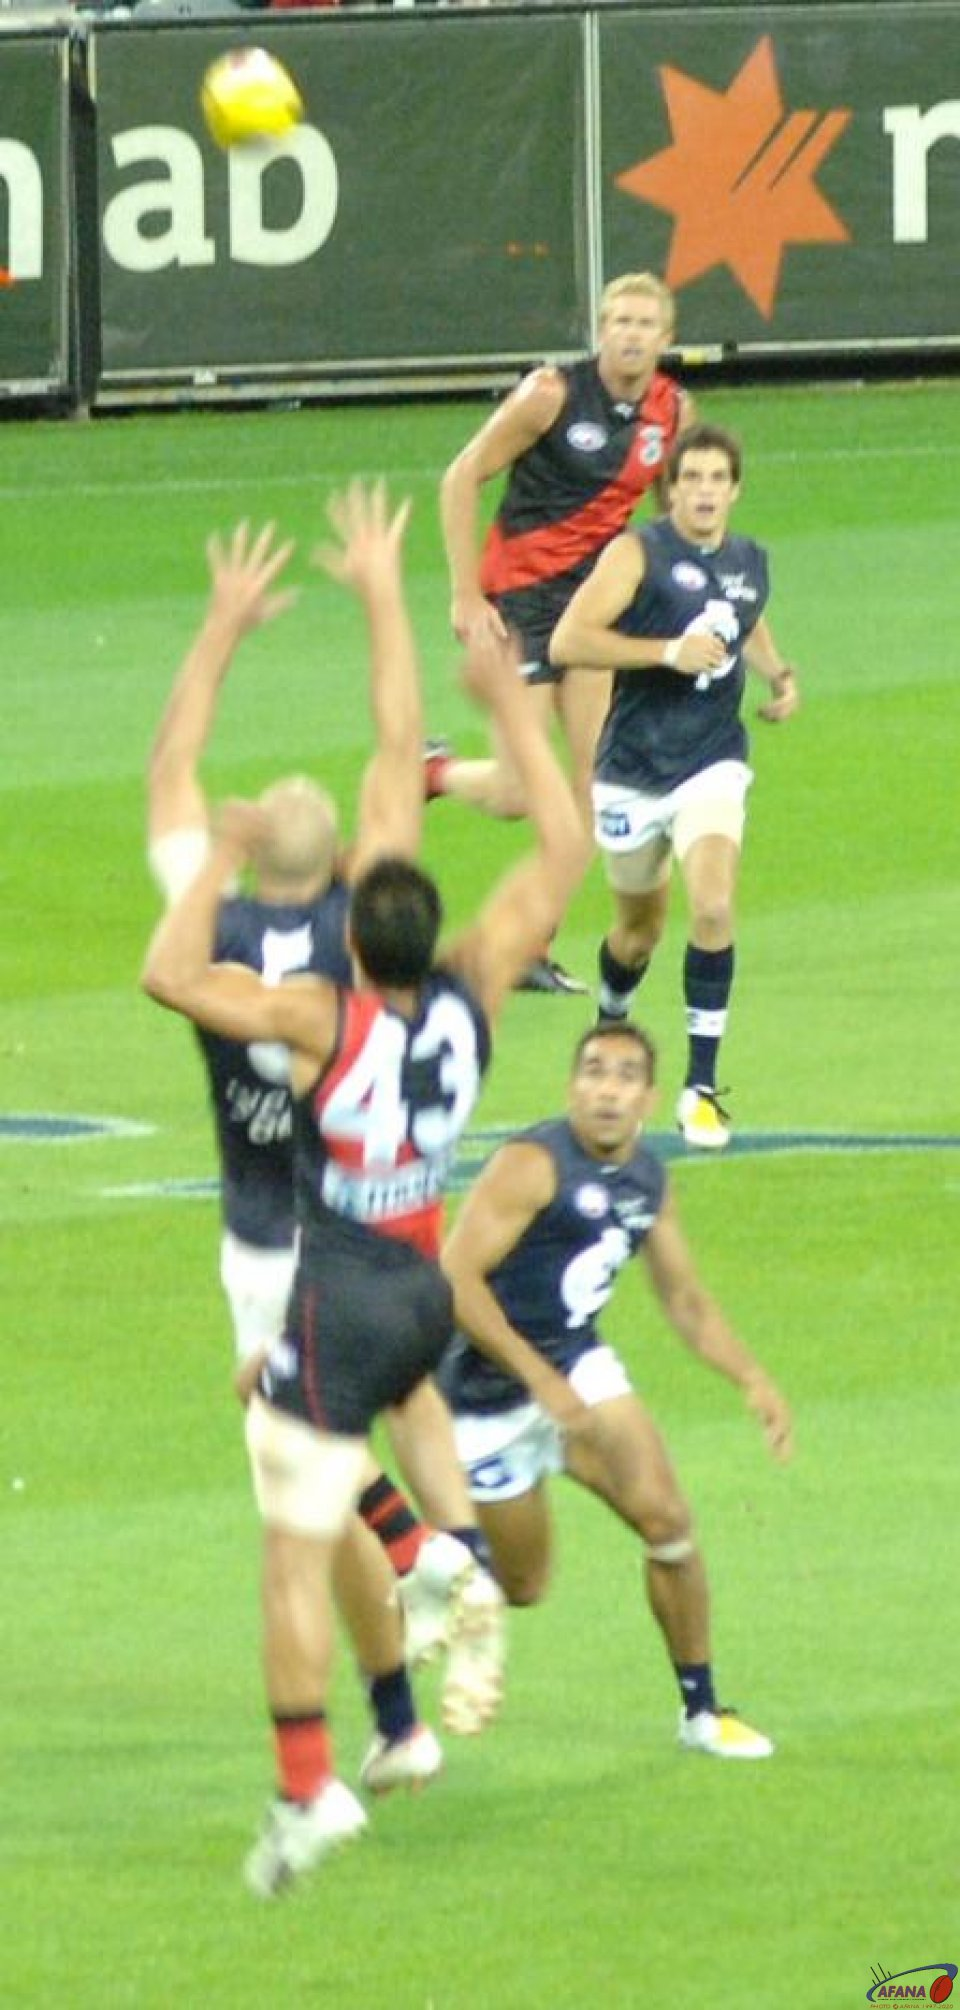 Mal Michael taking a mark for Essendon against Chris Judd of the Blues